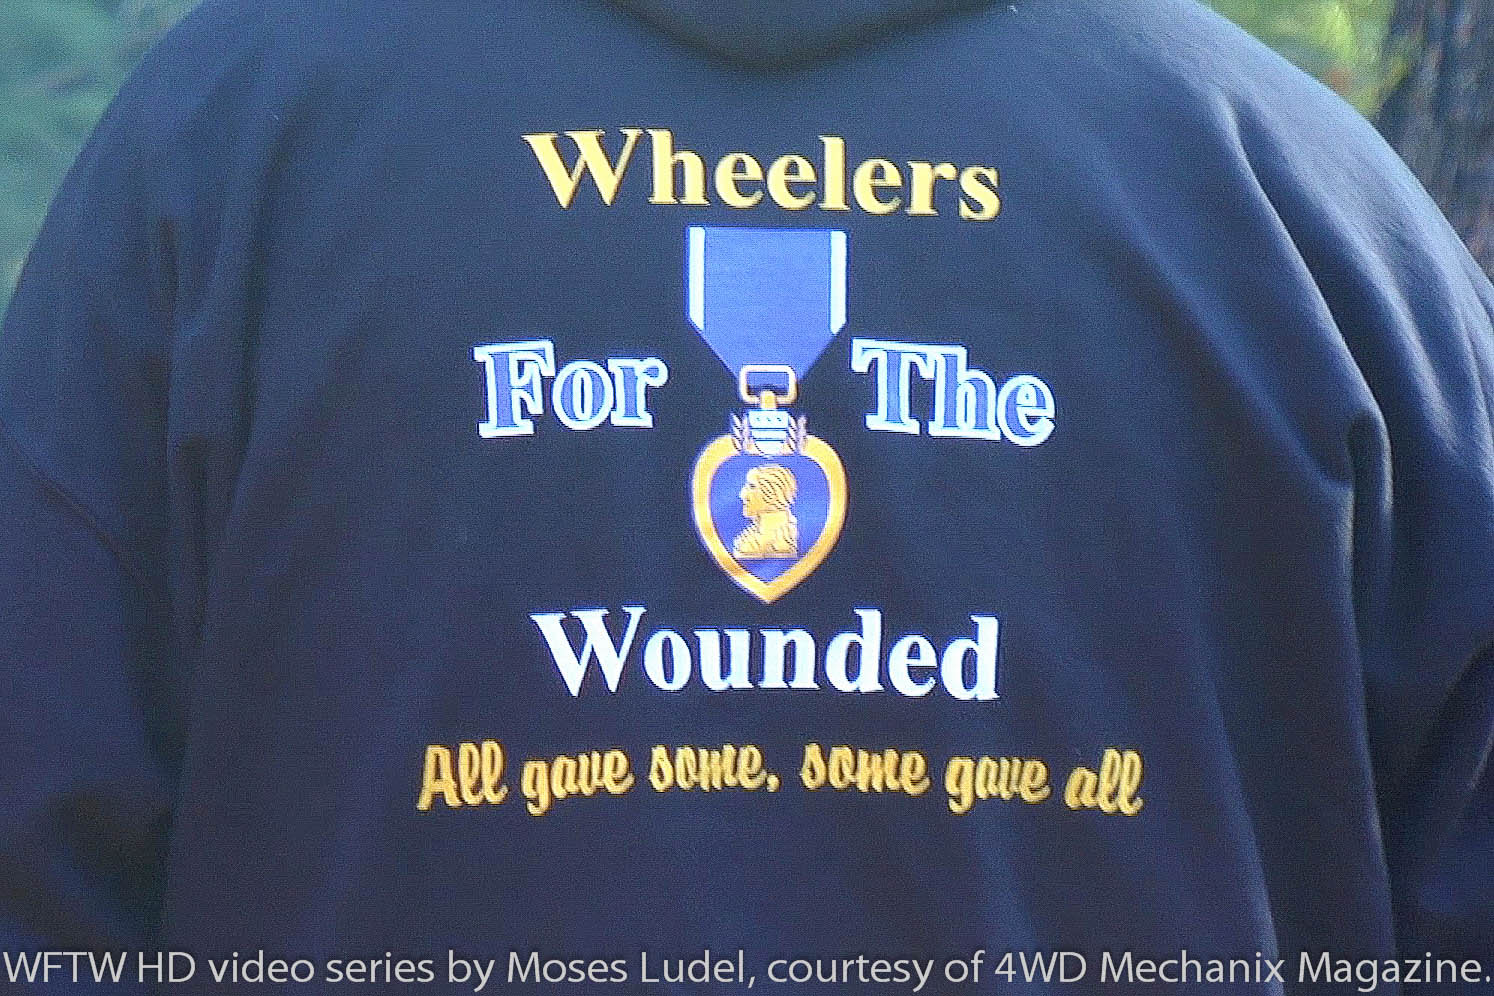 2011 Wheelers for the Wounded Rubicon Super Event